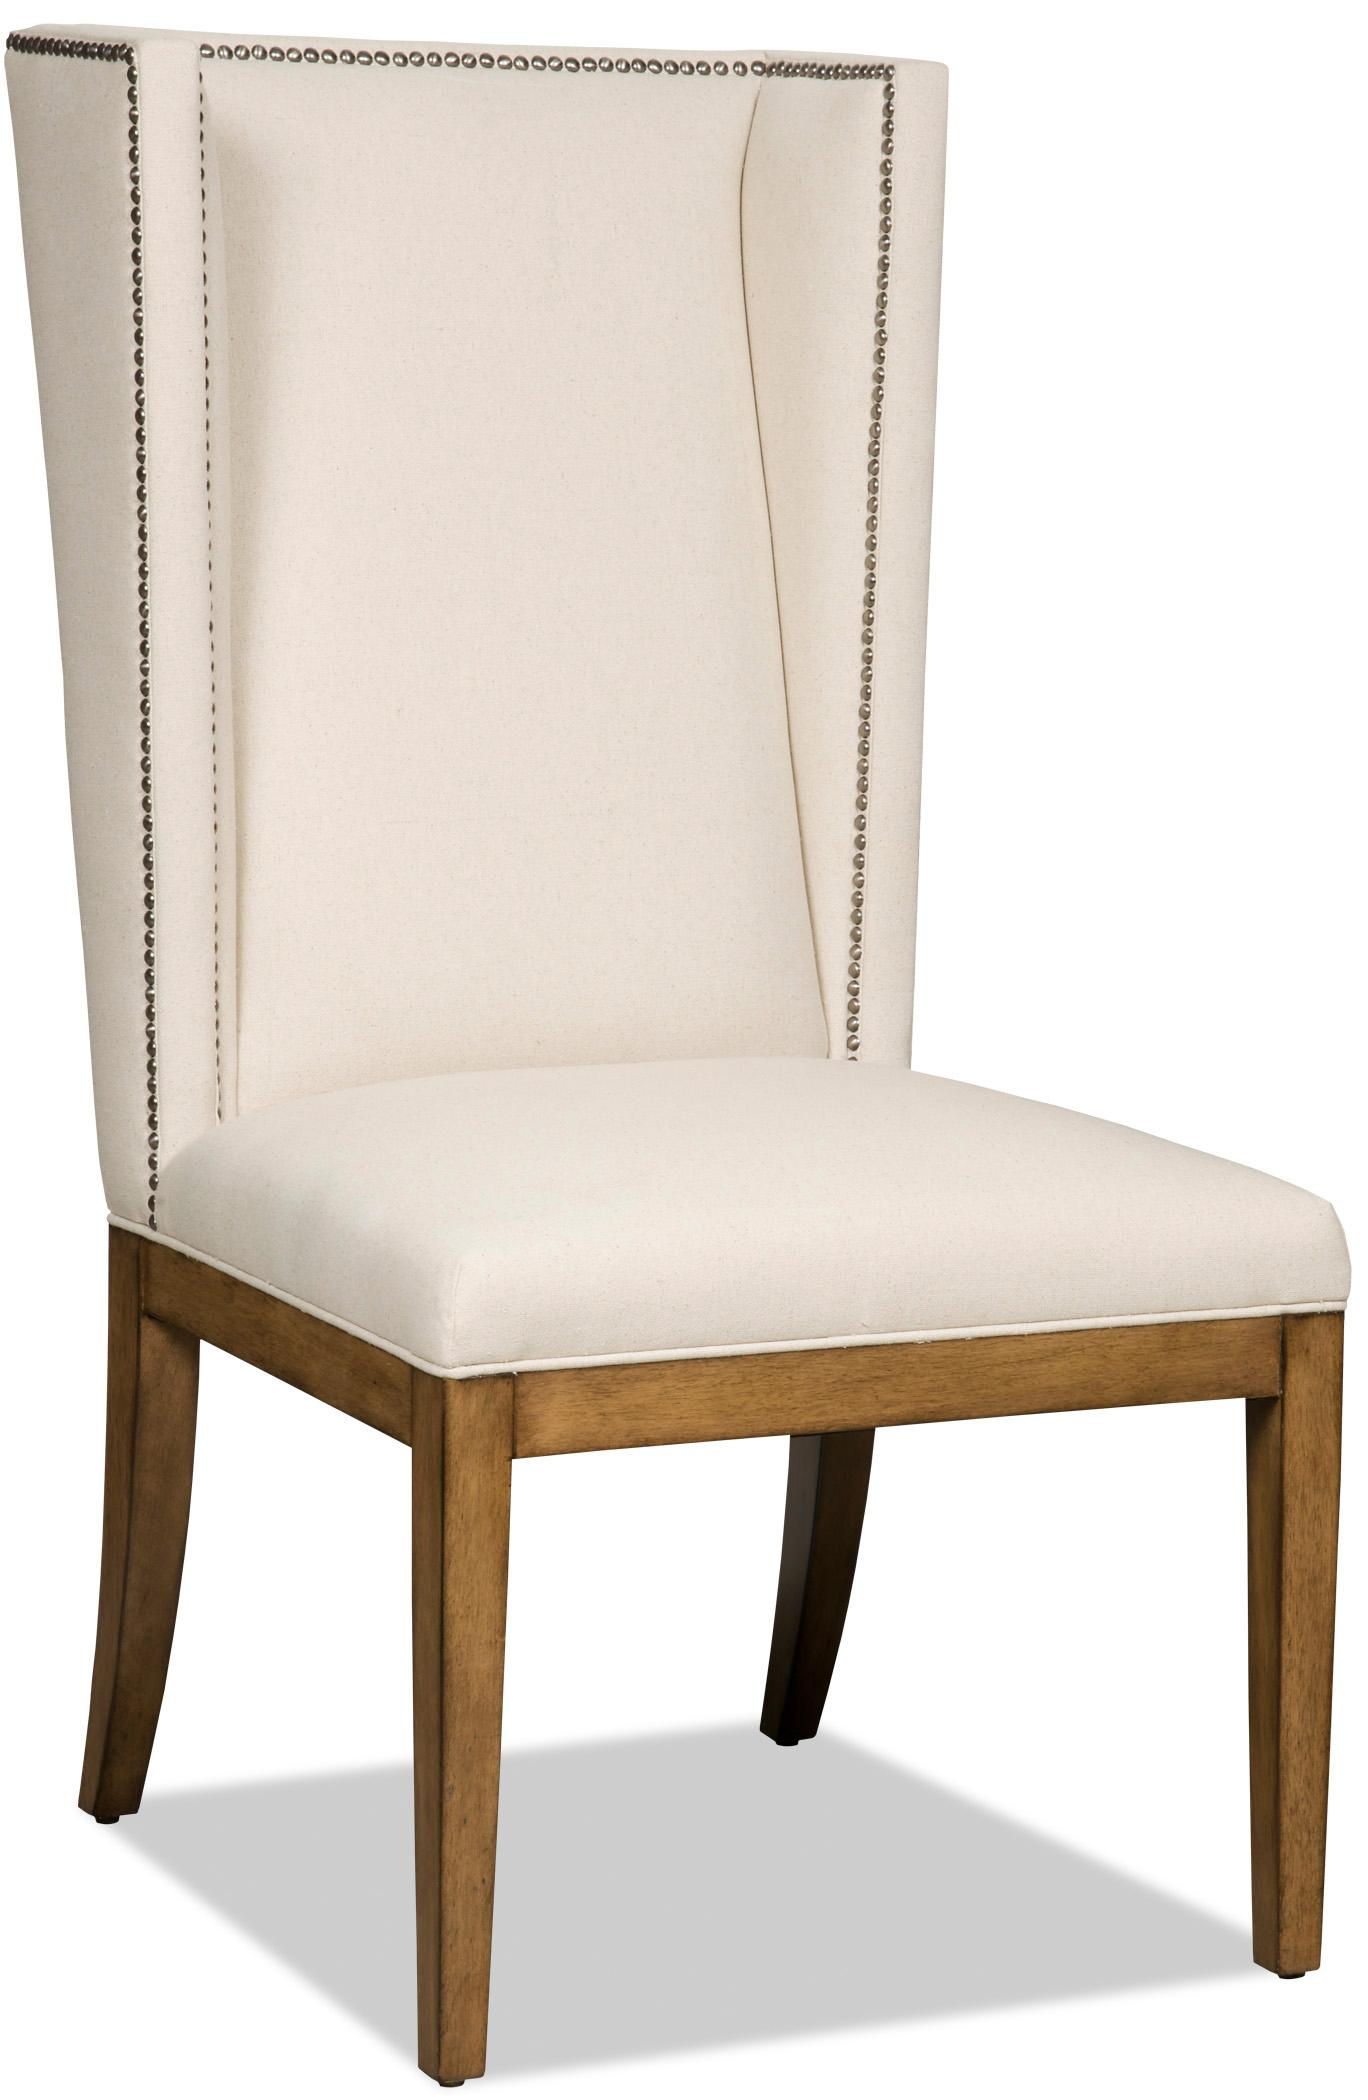 Hooker furniture dining chairs upholstered parsons dining for Upholstered parson dining chairs